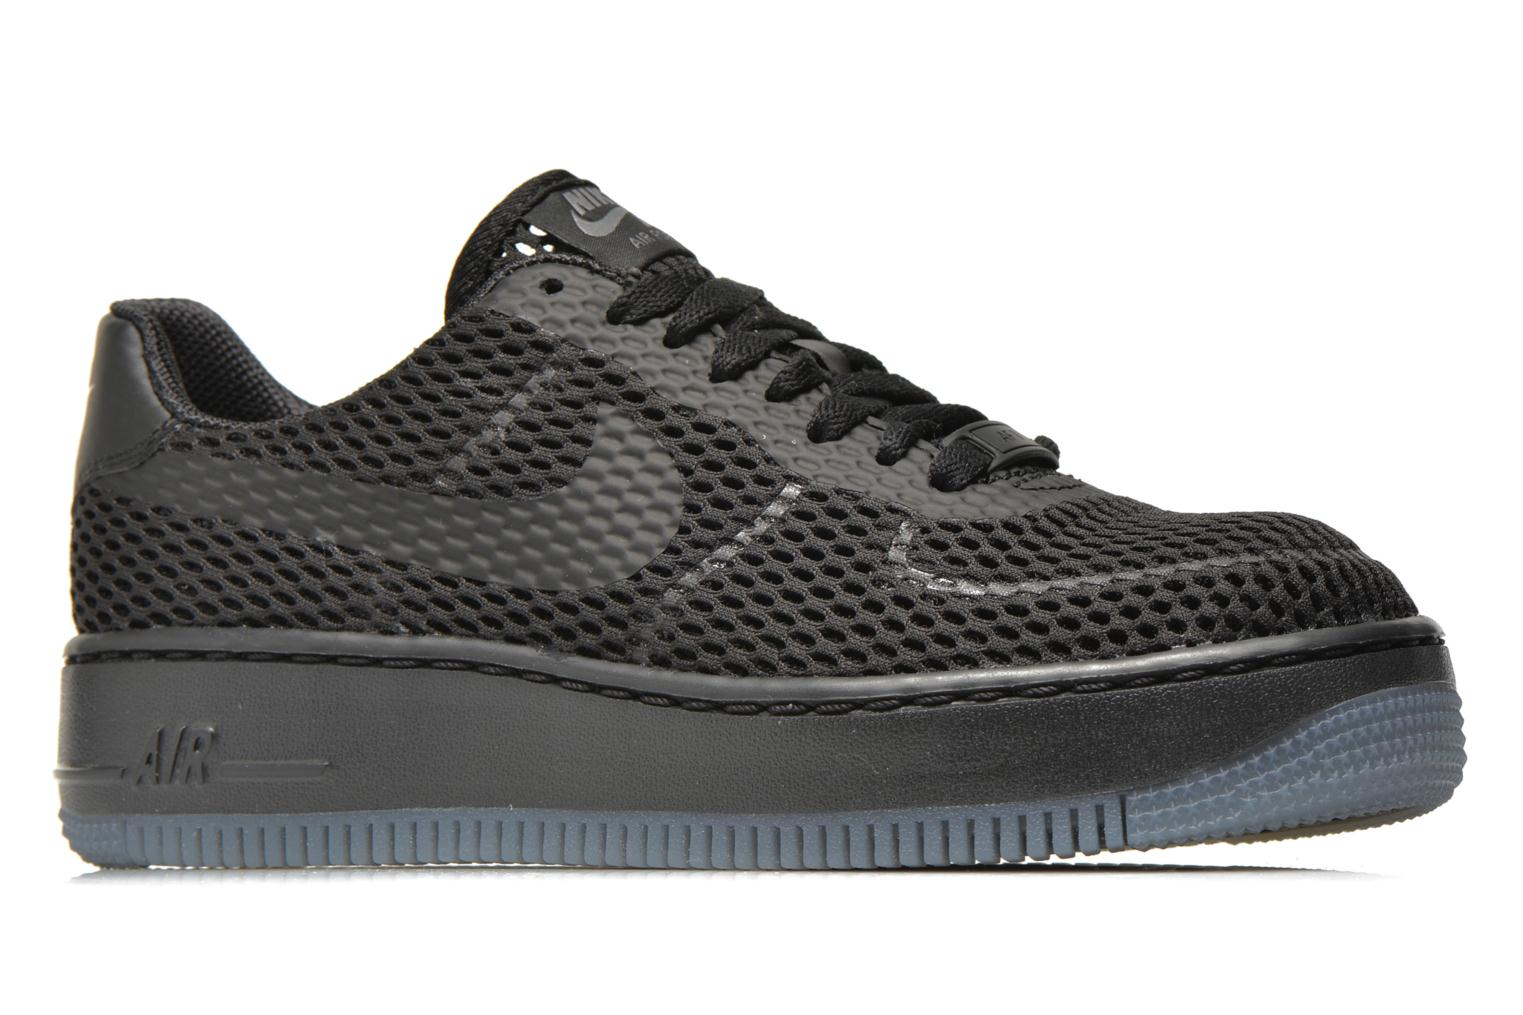 W Af1 Low Upstep Br Black/black-cool grey